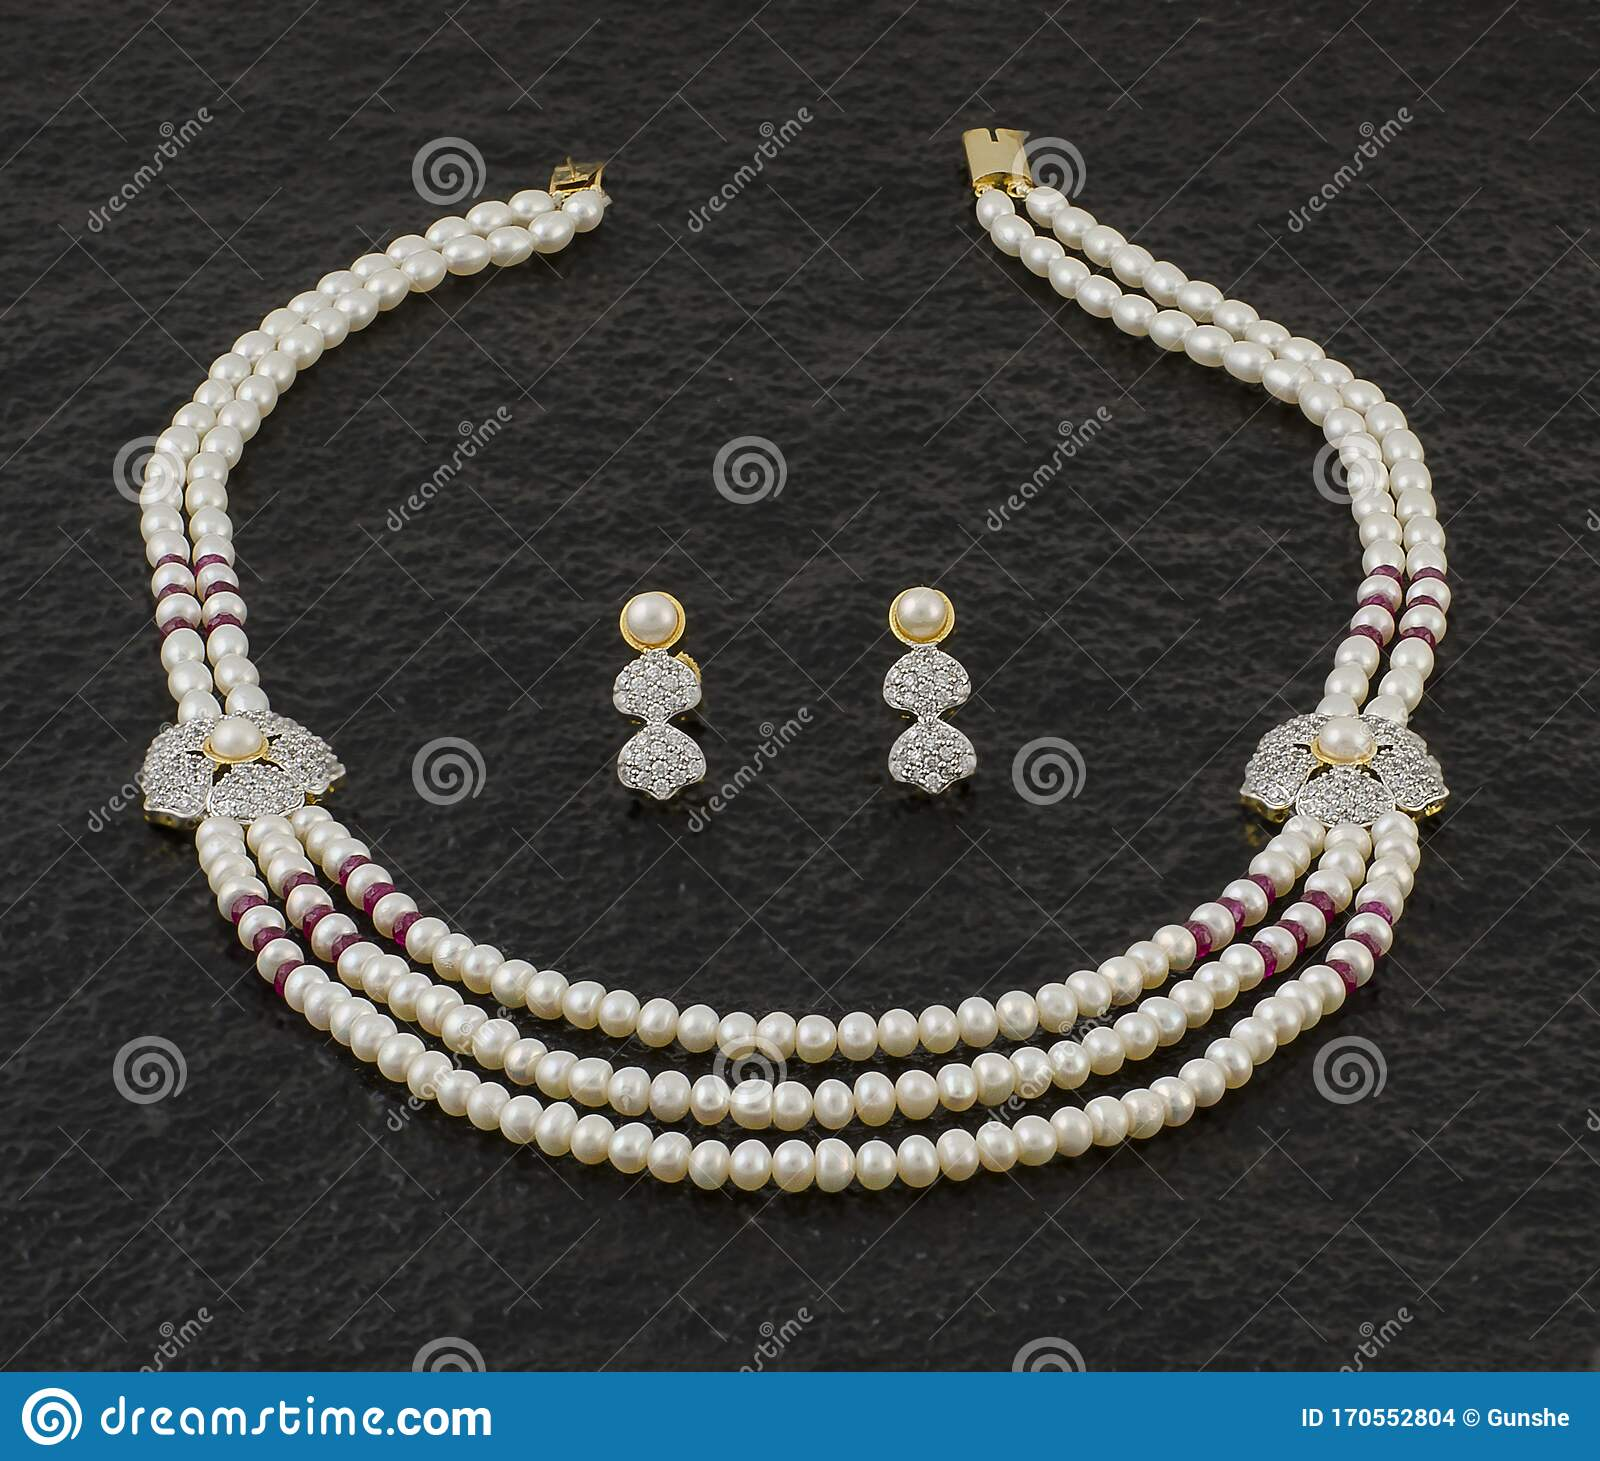 Best Pearl Necklace Illustrations, Royalty-Free Vector